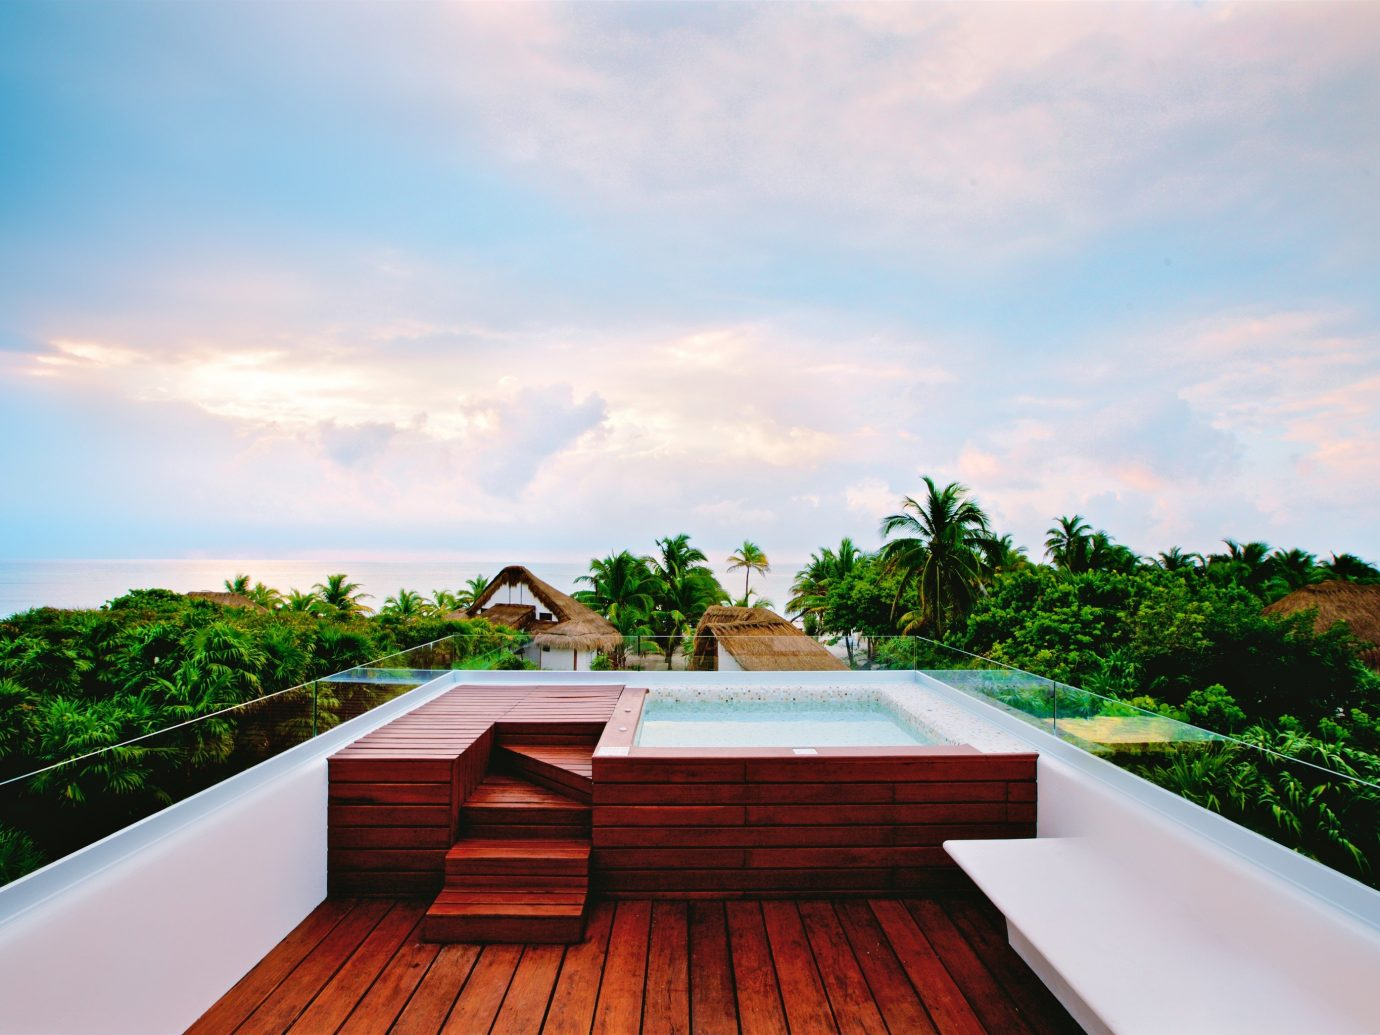 Boutique Hotels Hotels Mexico Tulum sky property Architecture real estate estate Resort house roof cloud Sea home water vacation Villa outdoor structure landscape